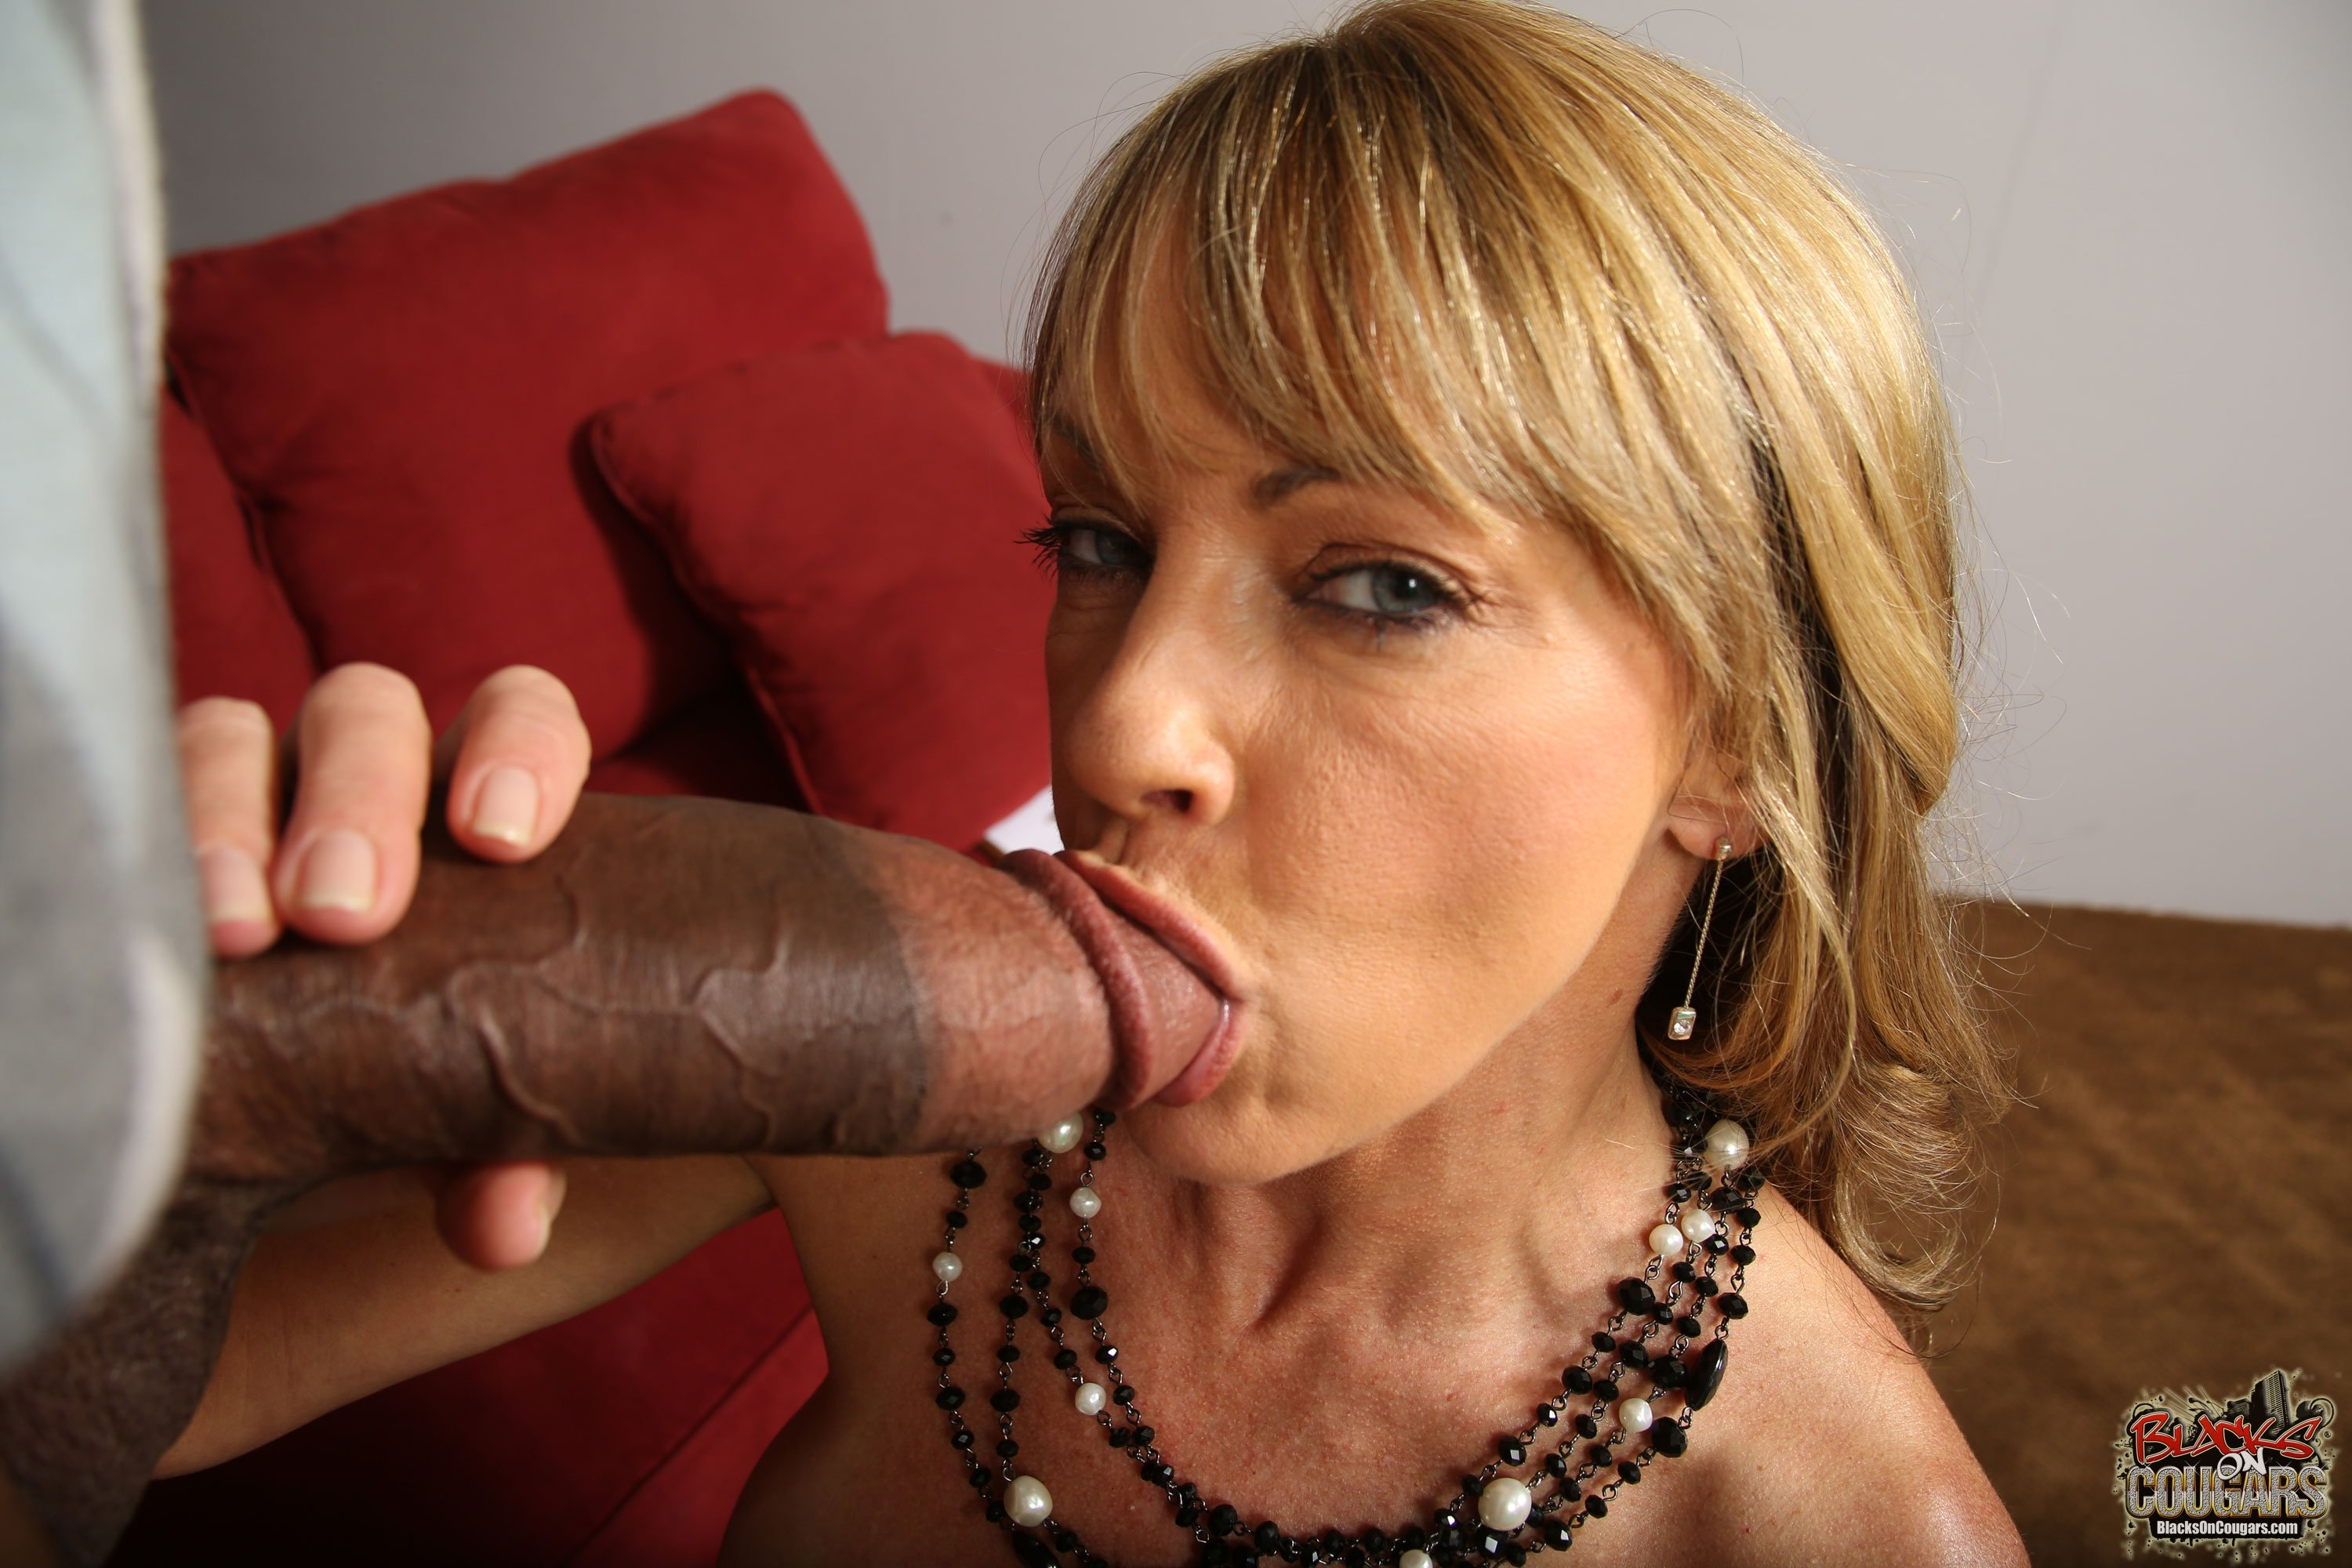 Interracial mom porn tube #1